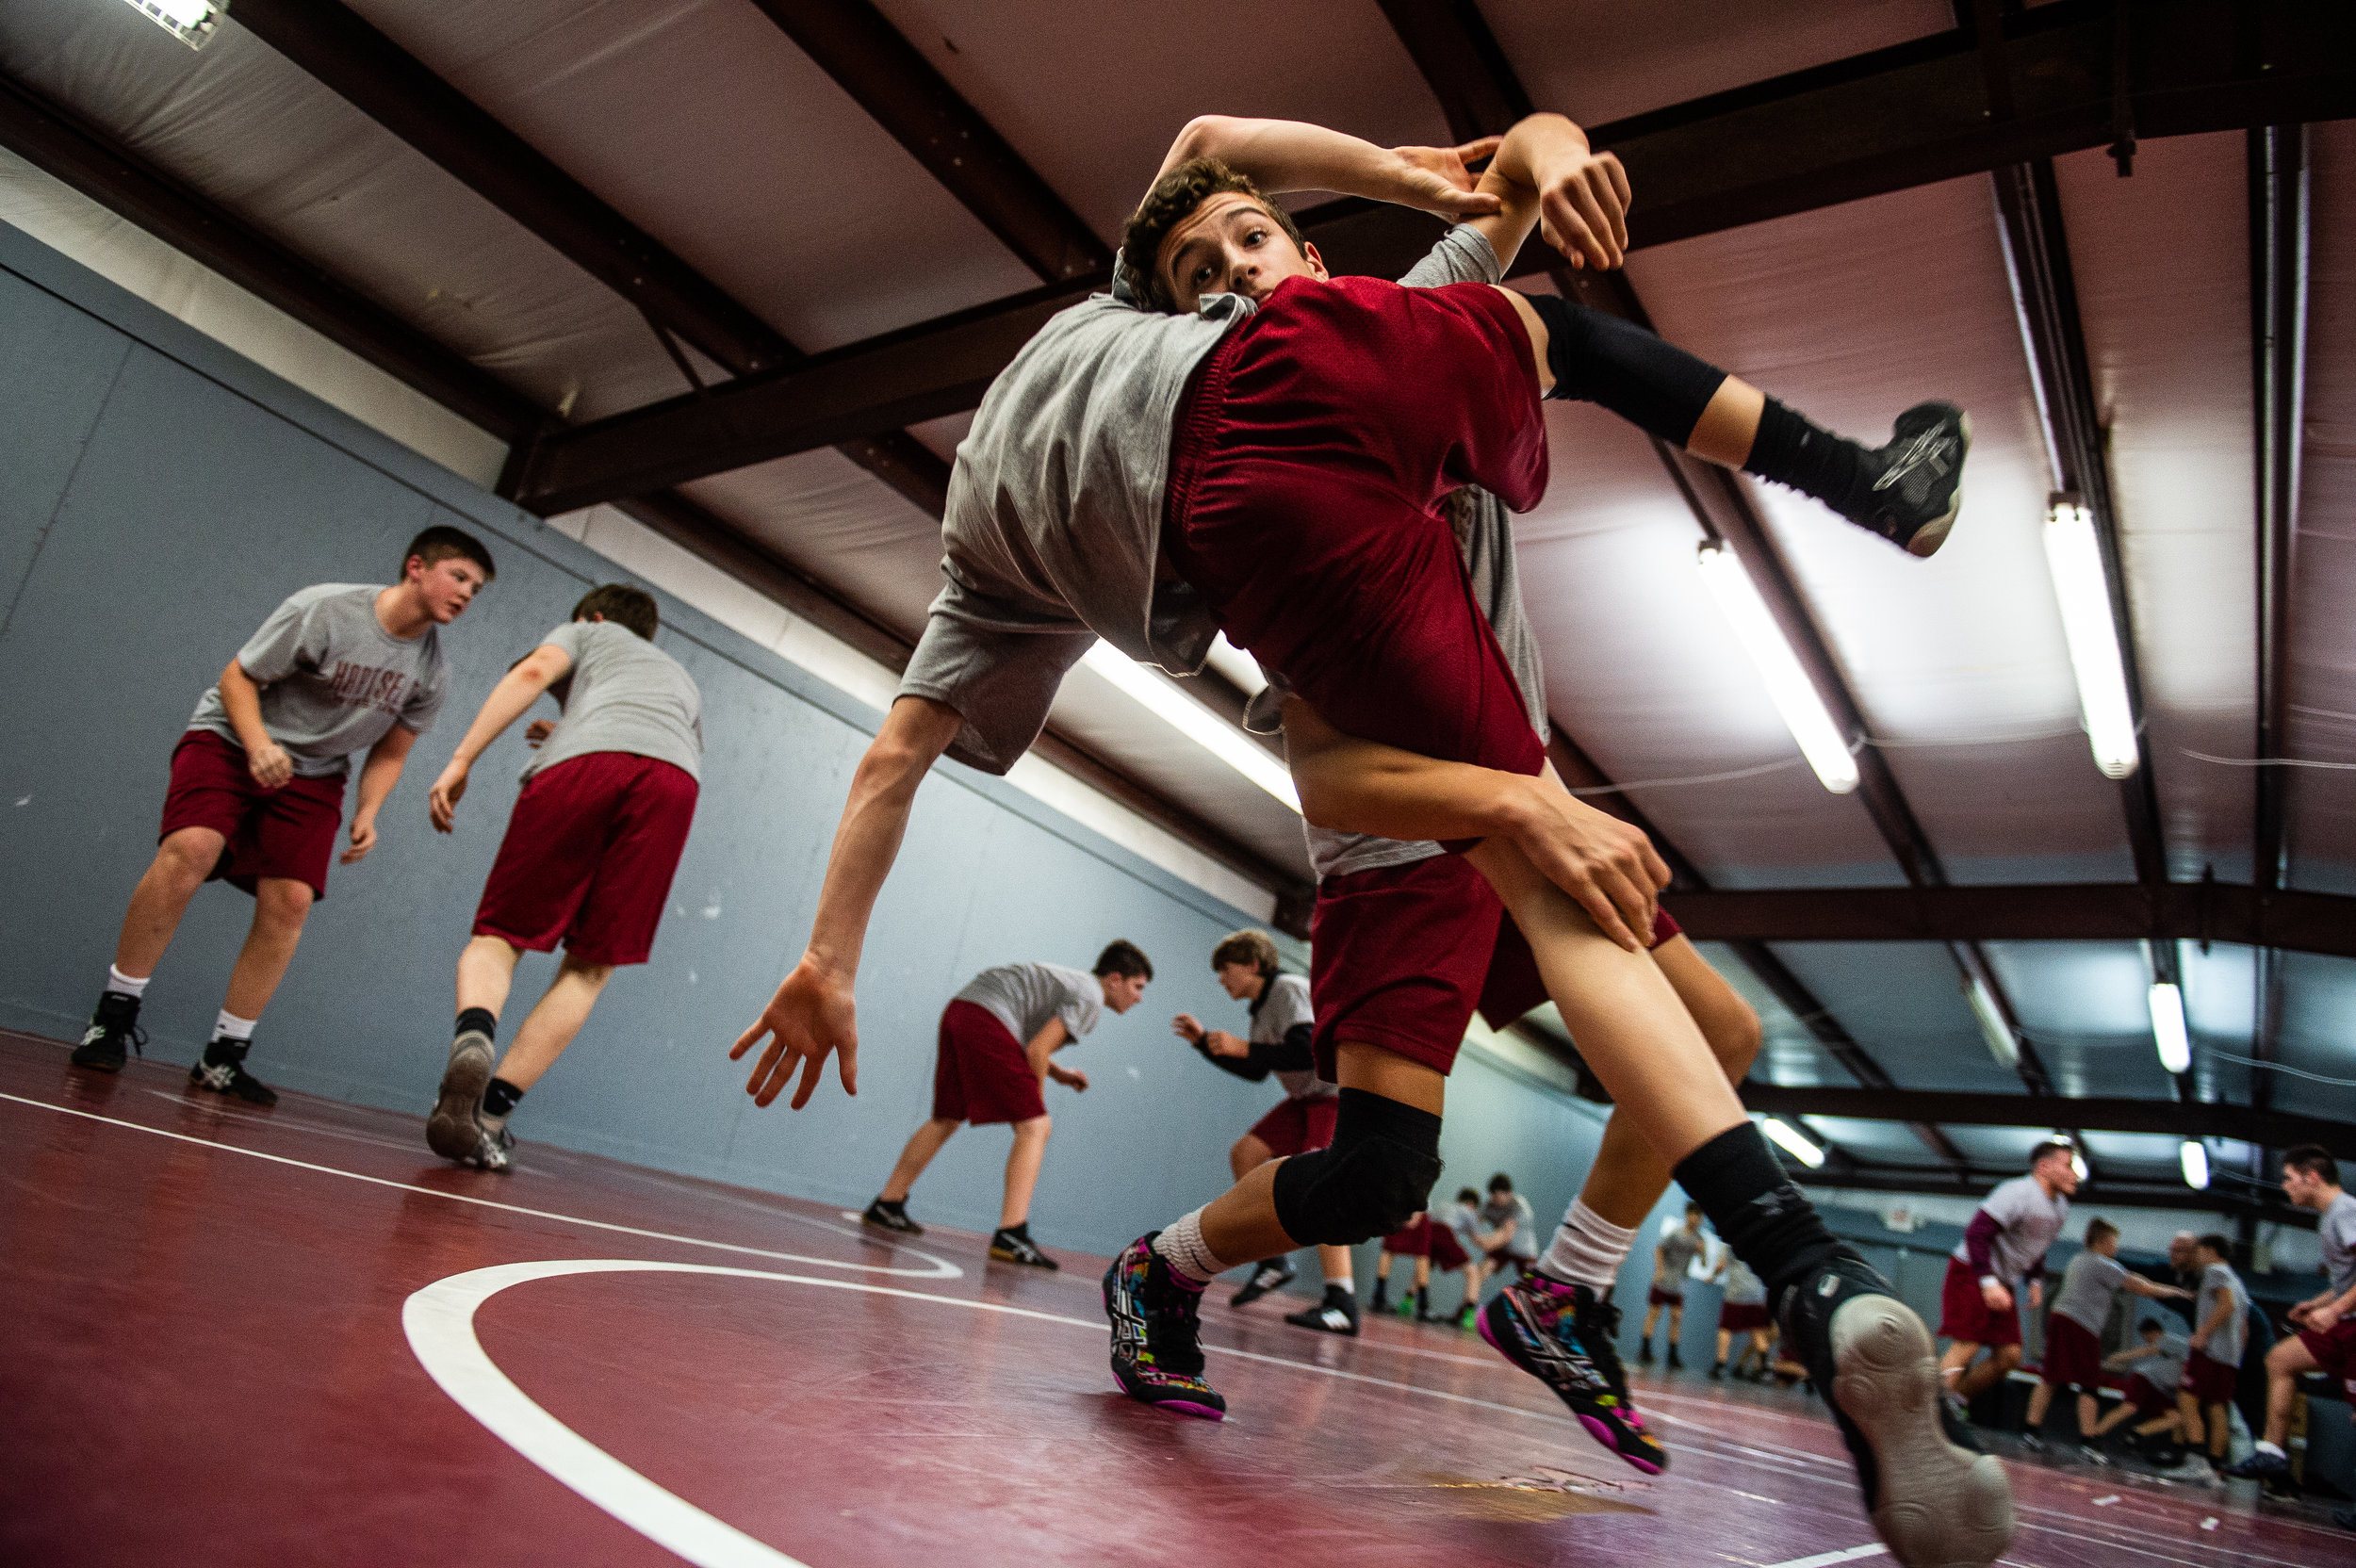 Student Payton Roberts tackles teammate Ethan England for an exercise drill during Hartselle Junior High's wrestling practice December 19, 2018, at Hartselle Junior High in Hartselle, Ala.